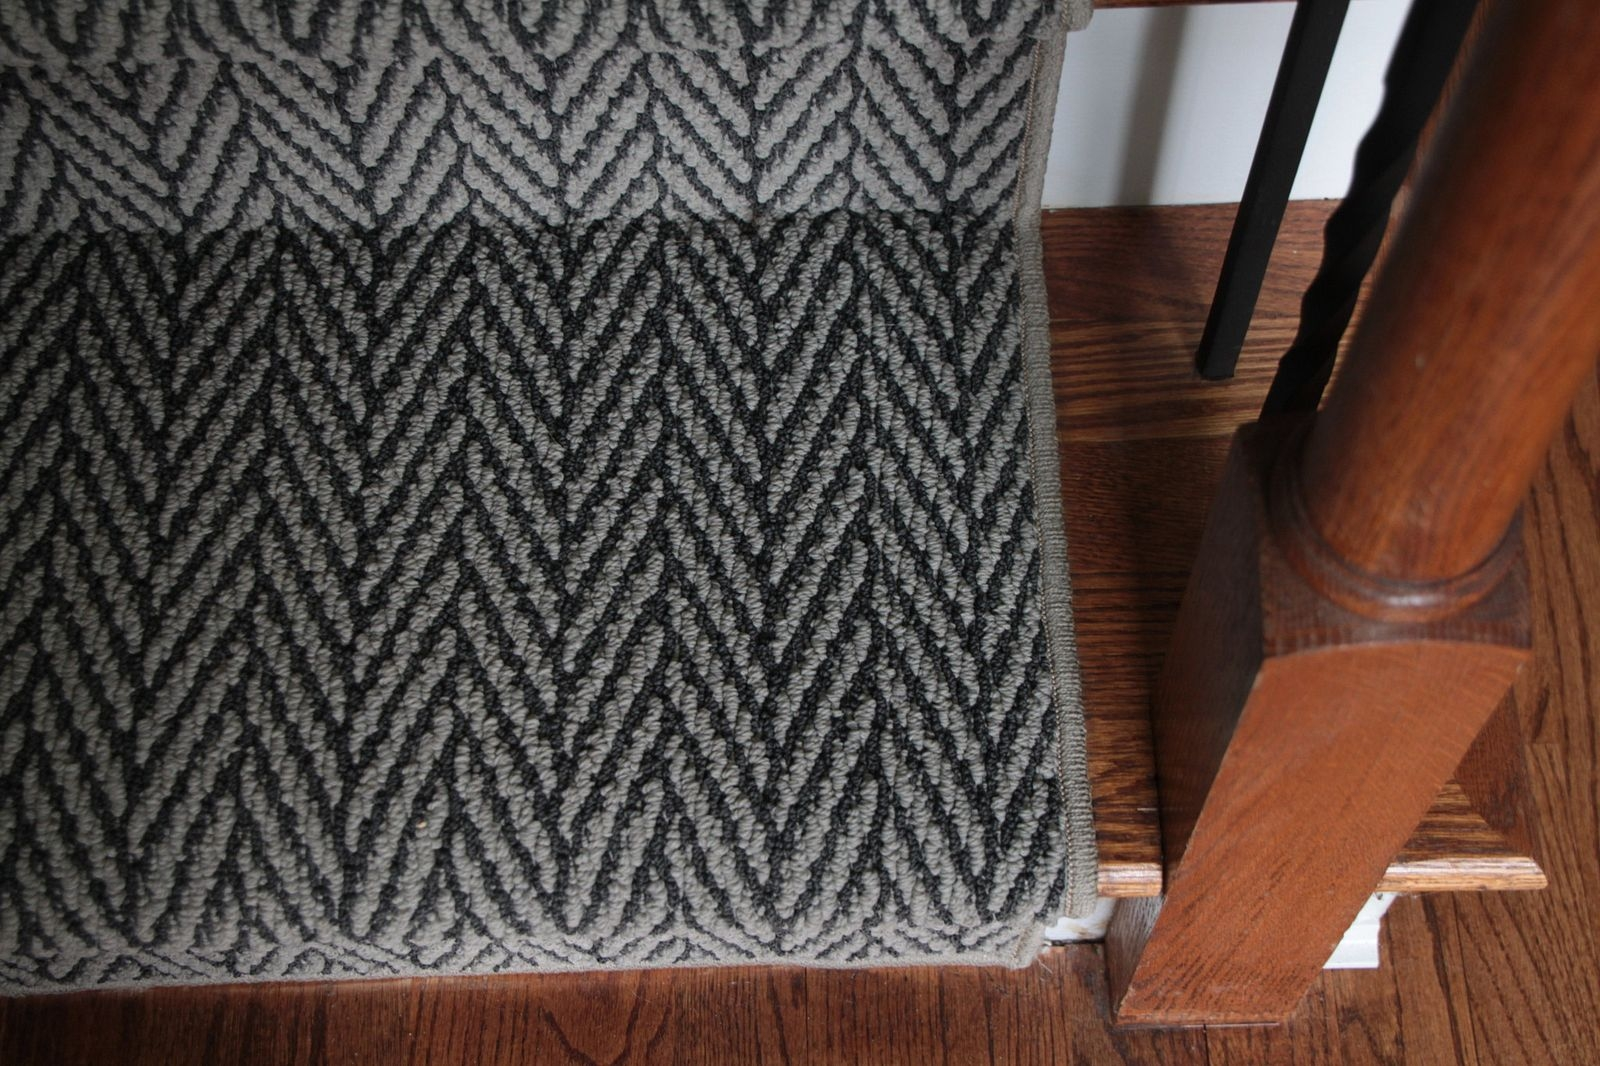 Floor Design Shaw Designers Change How You See Floors Shaw | Stair Runners For Carpeted Stairs | Round Corner | Marble | Hardwood | Commercial | Tile Stair